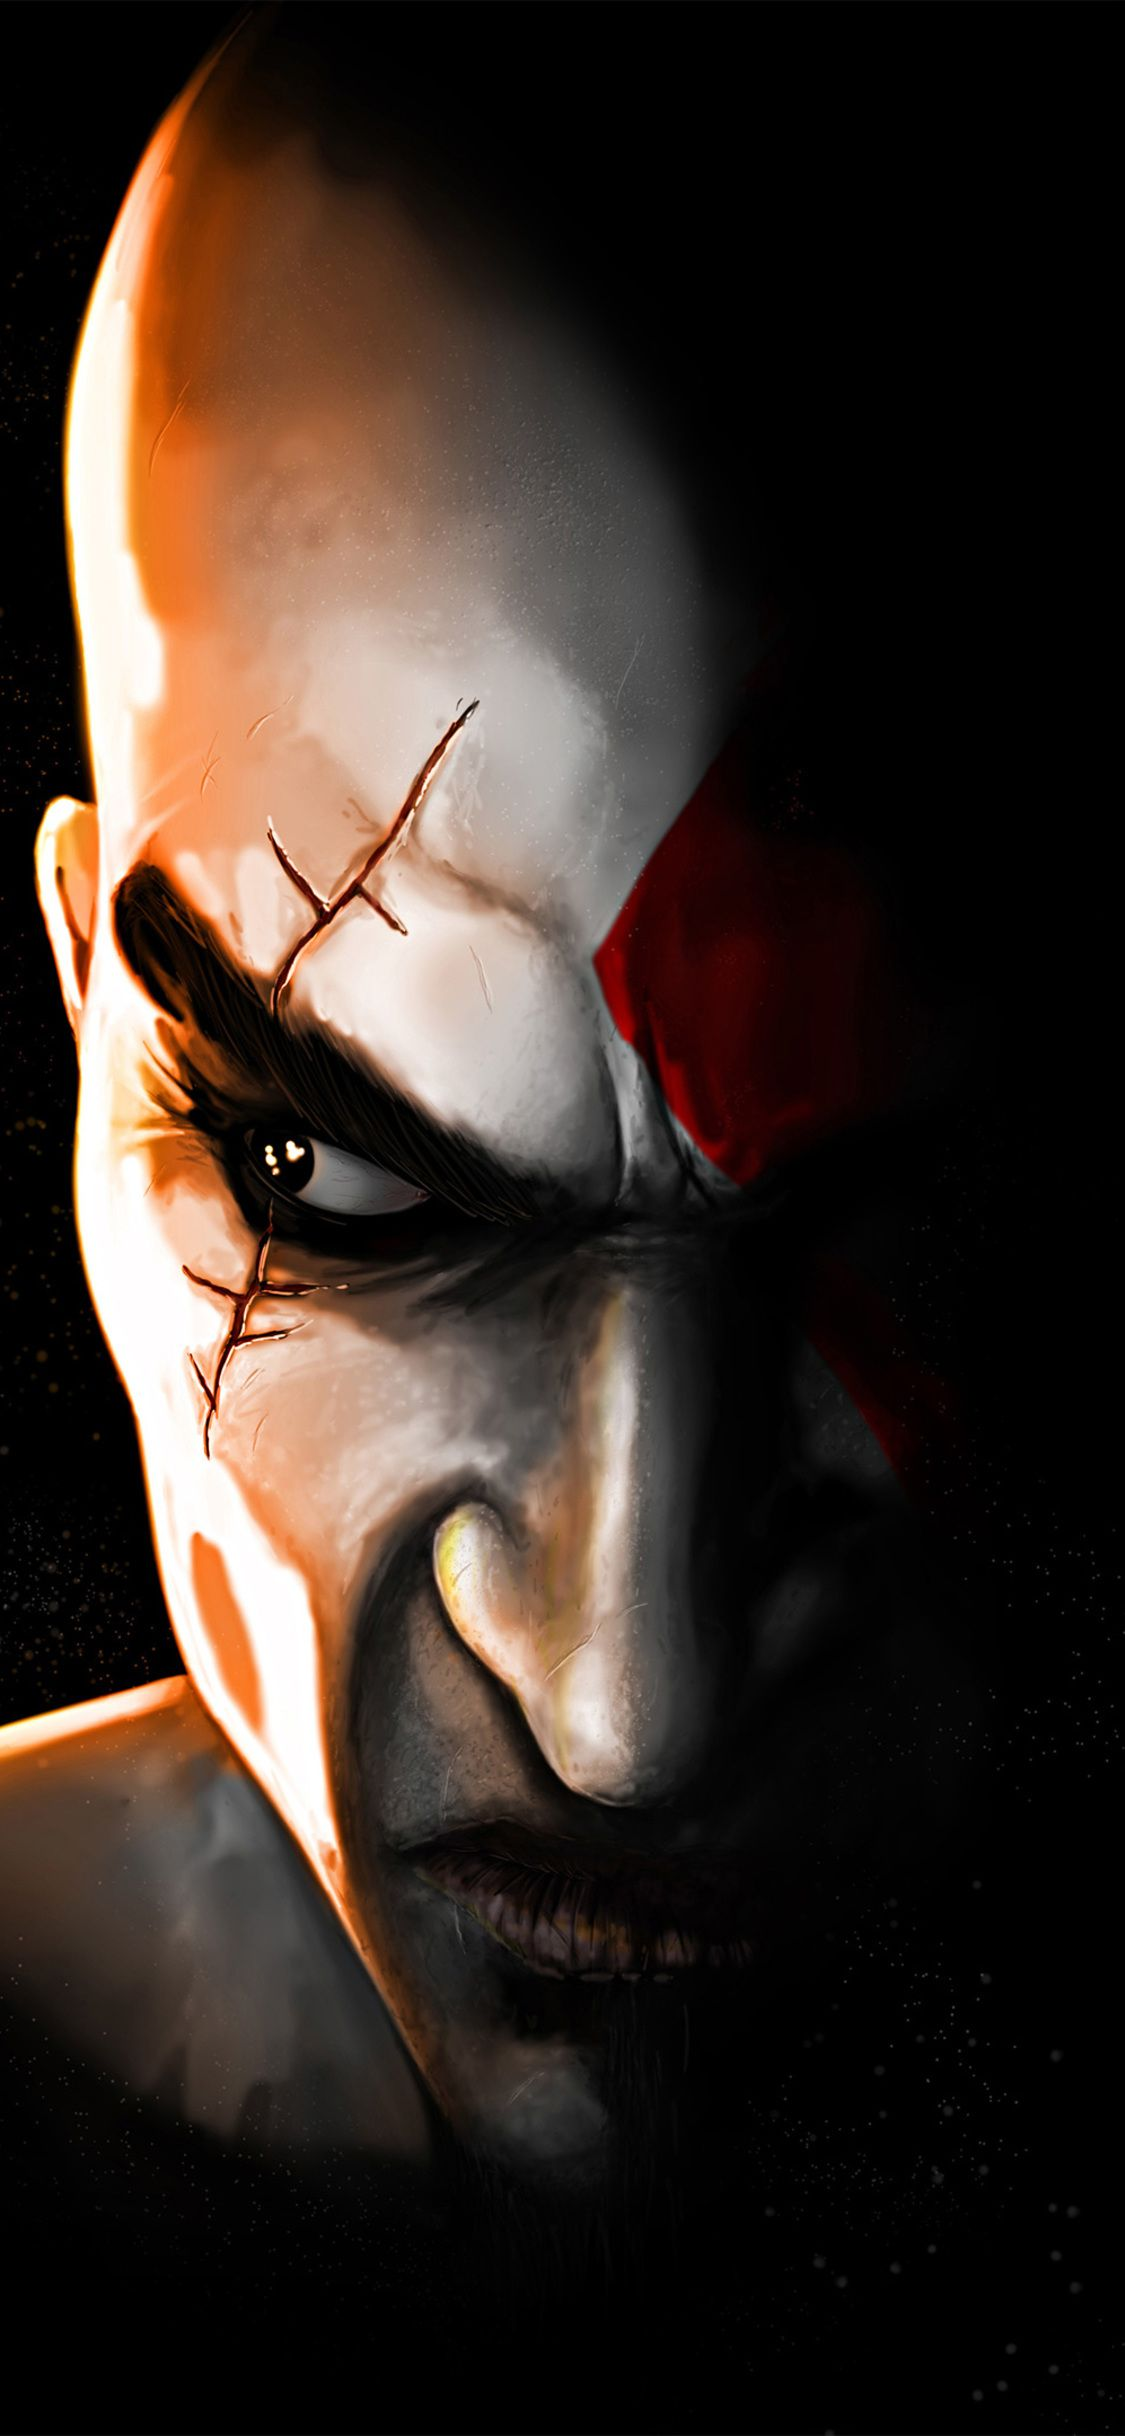 Desktophdwallpaper Org Phone Wallpaper Images Kratos God Of War Phone Wallpaper